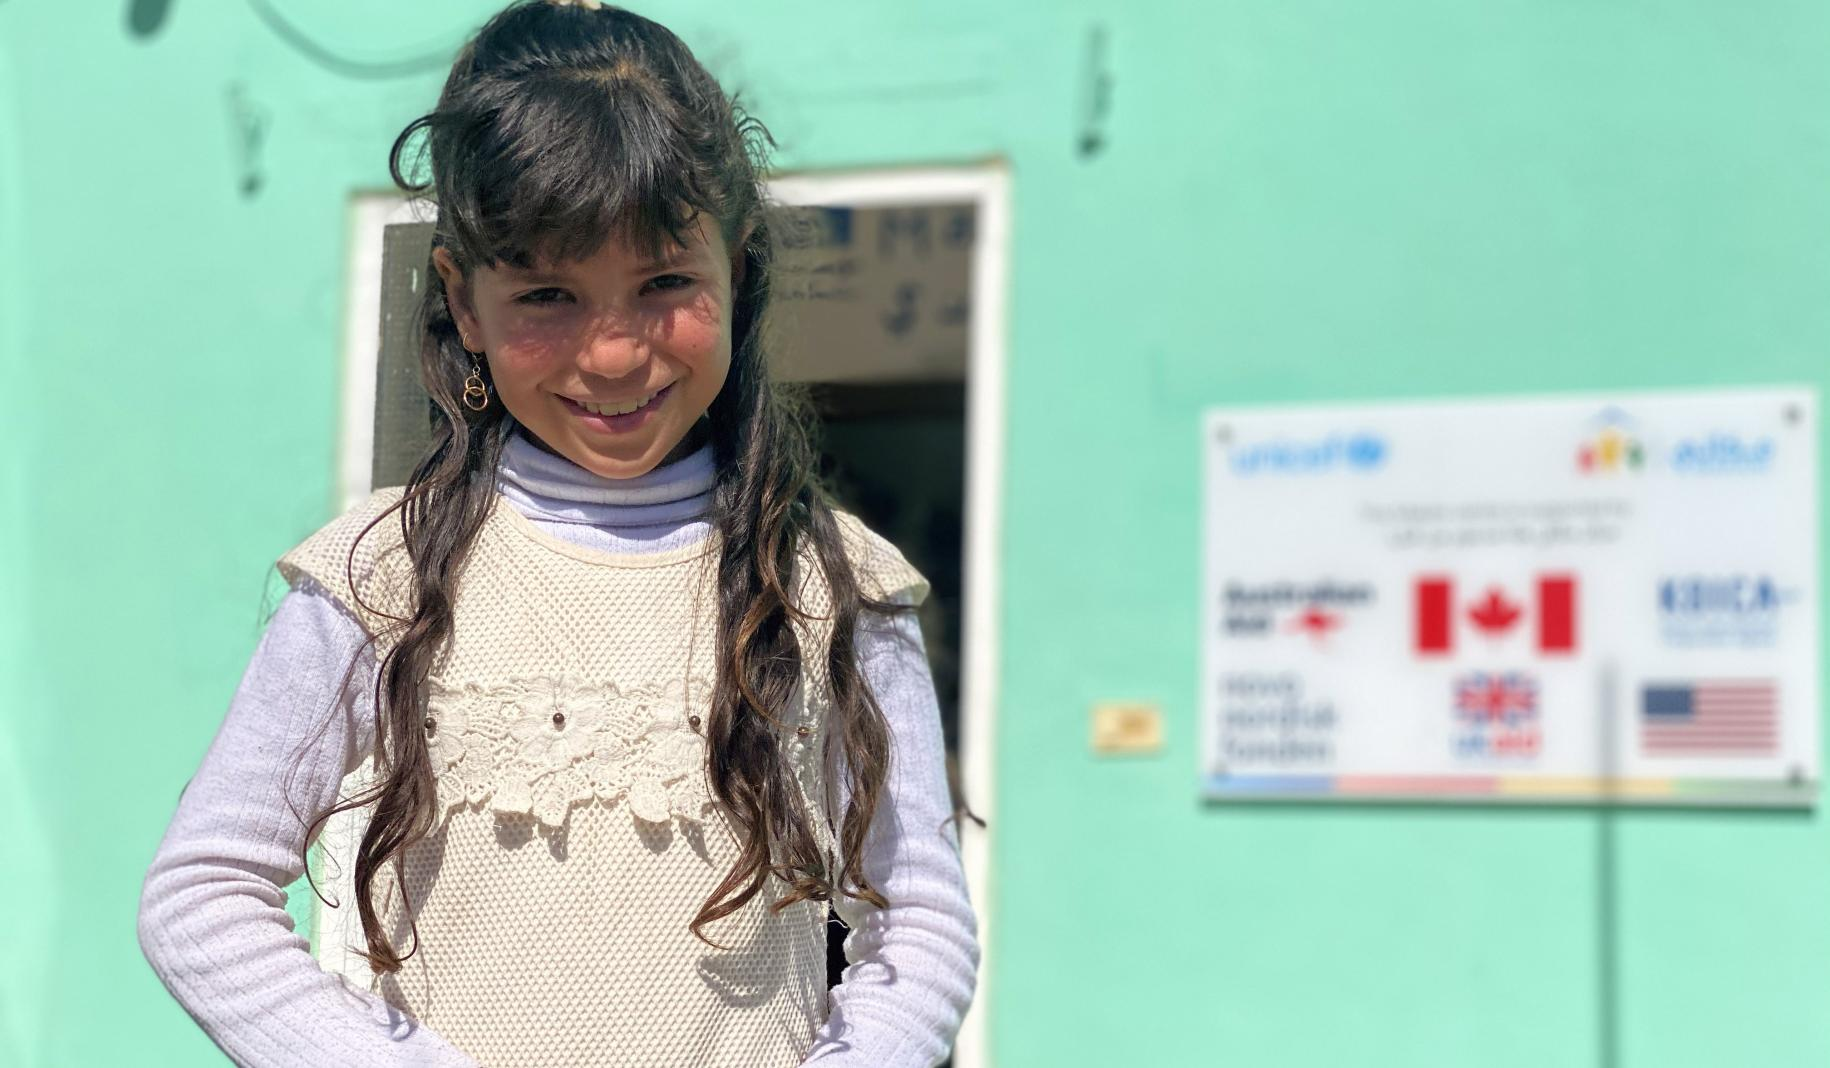 Kawthar, 10, smiles shyly at the camera as she stands outside in front of a green building.